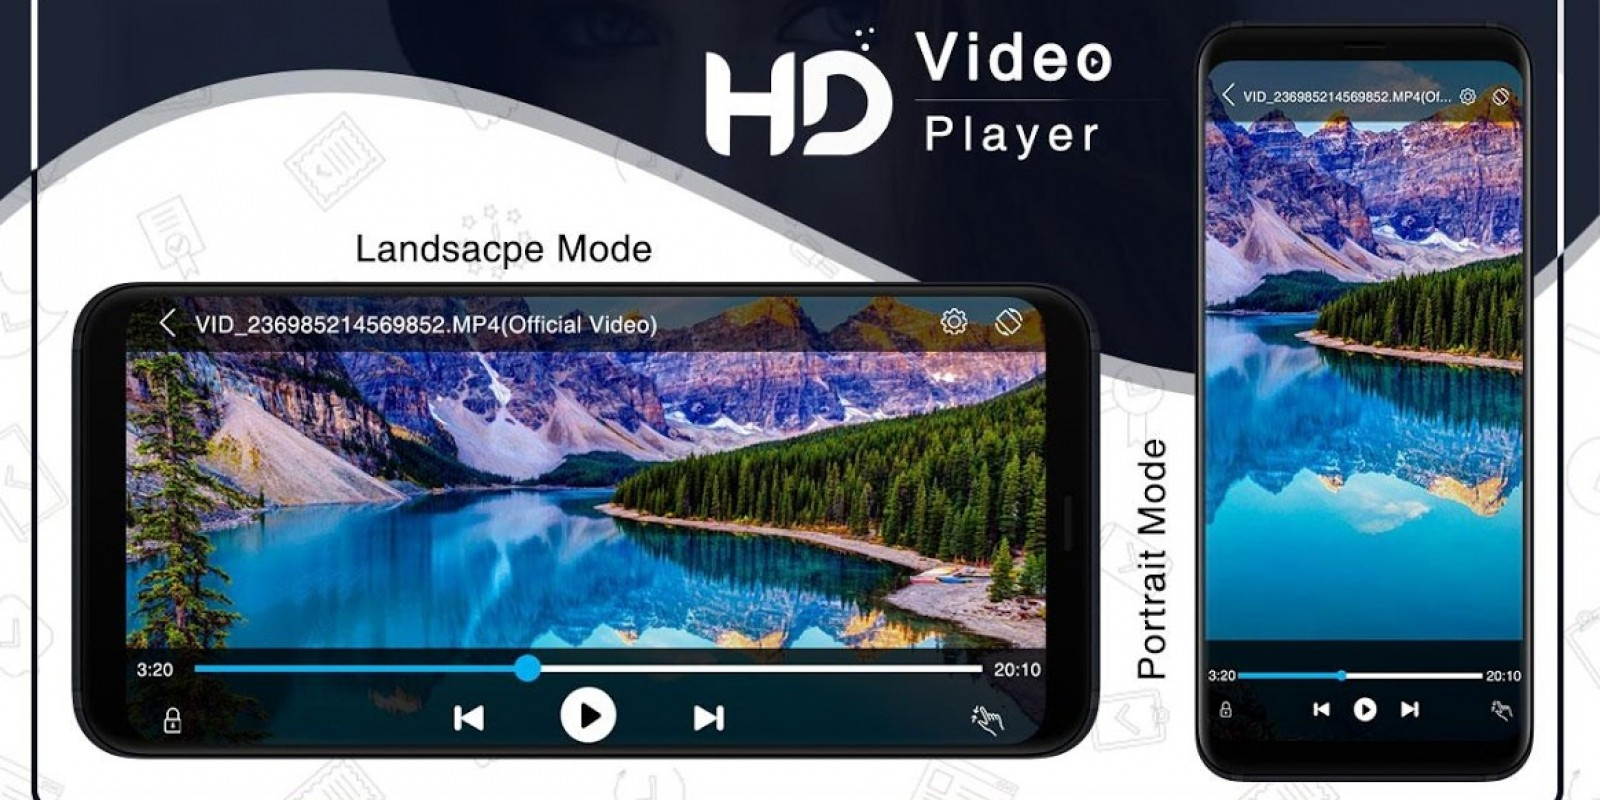 HD Video Player - Android App Source Code